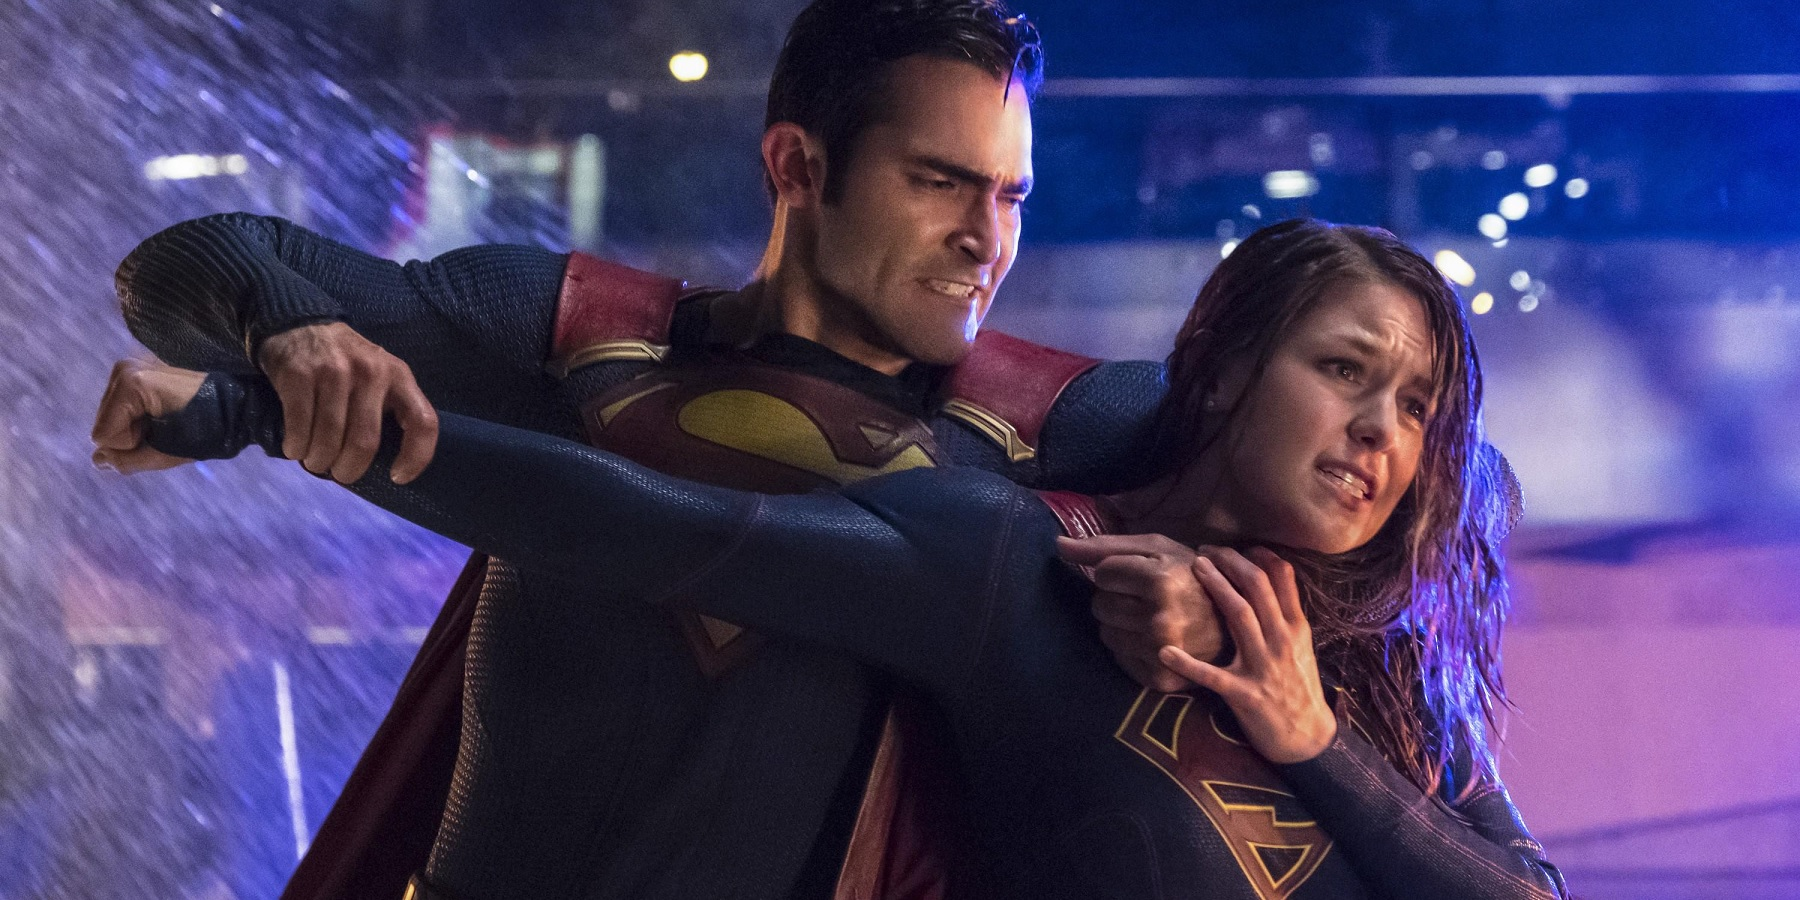 Supergirl season 2 finale - Evil Superman